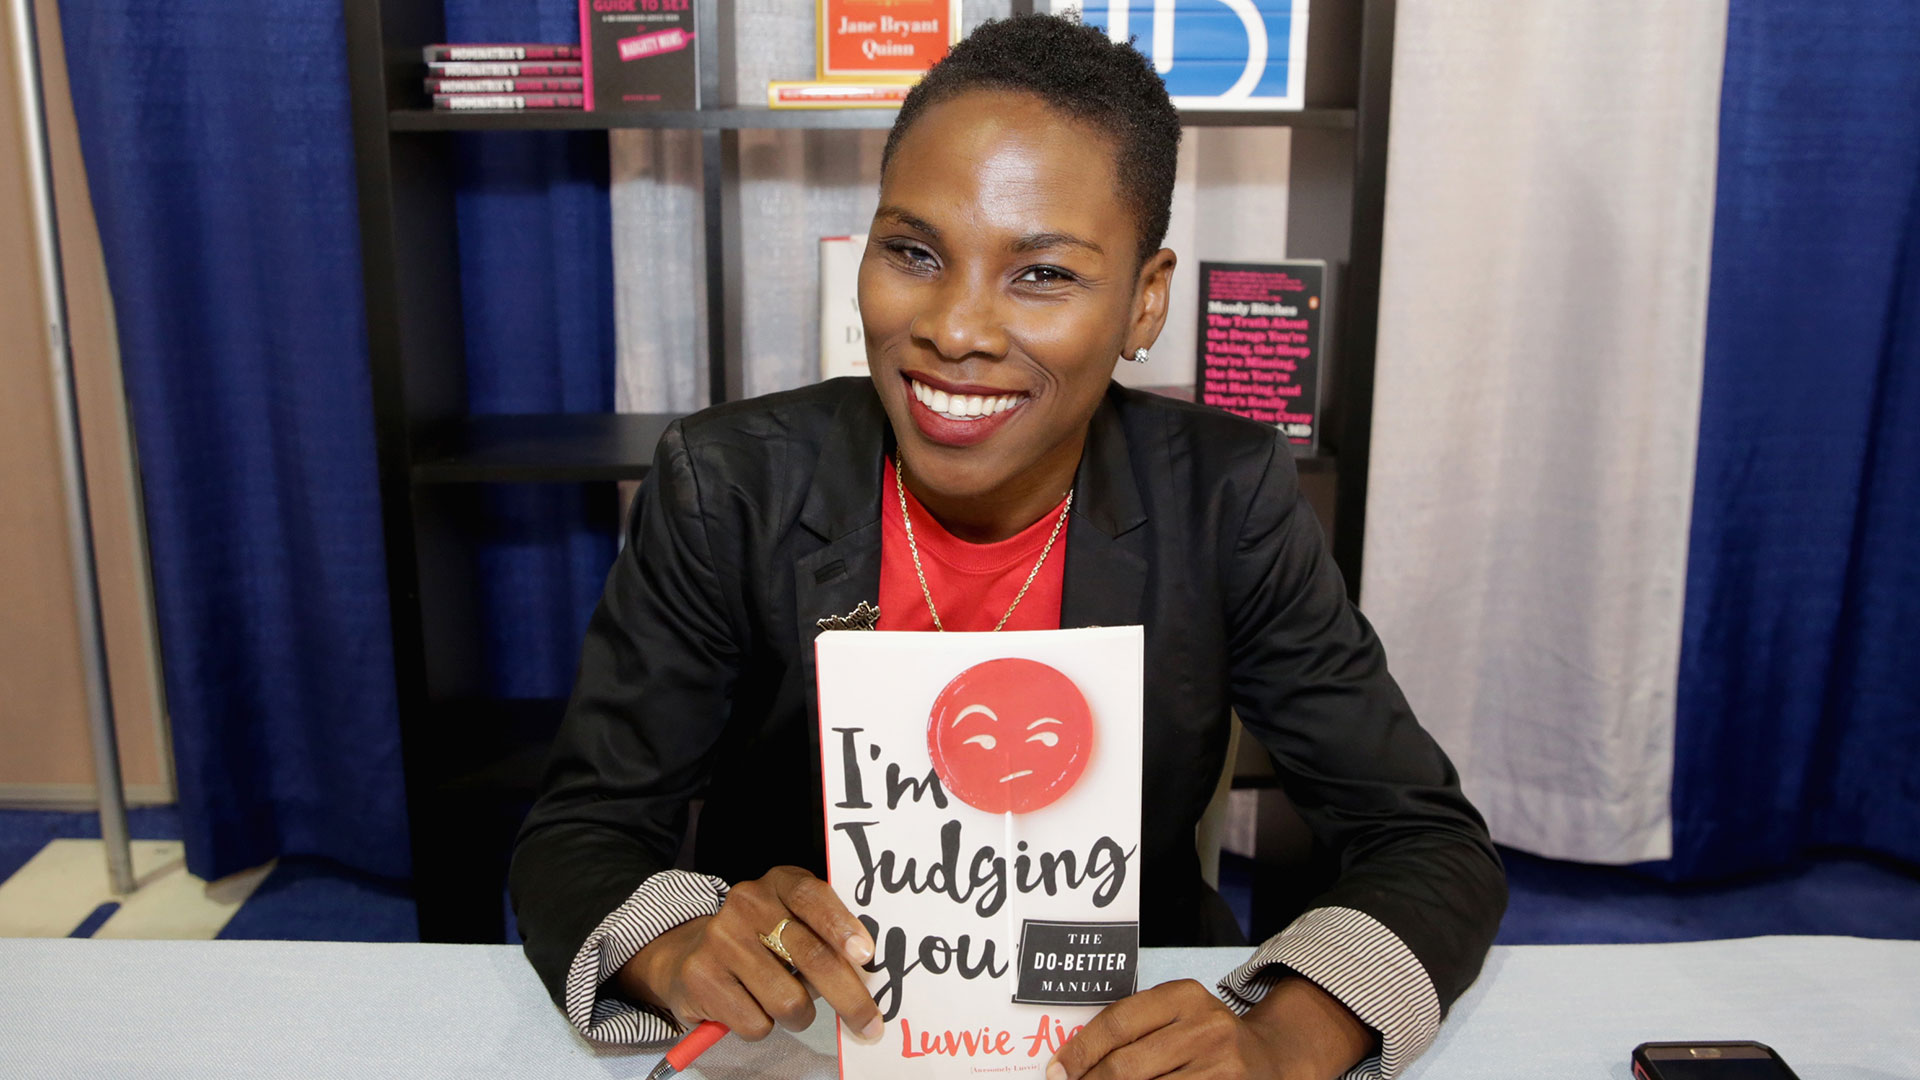 Luvvie Ajayi Excels at Throwing Shade – and Built a Career on It